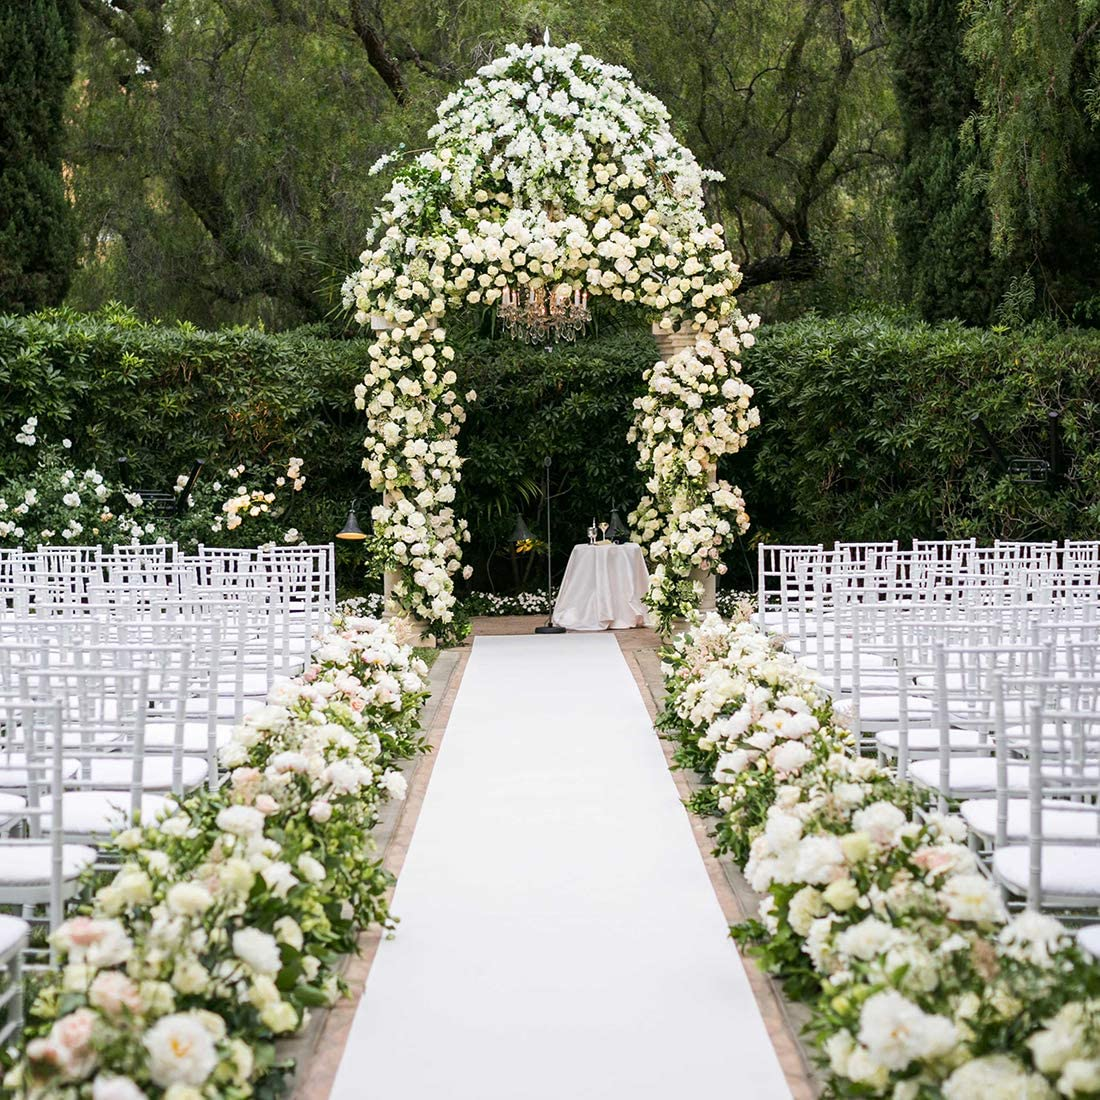 Healon 10 x 10 ft Wedding Aisle Runner White Aisle Runner Rug with Pull  String for Wedding Ceremony and Party Floral